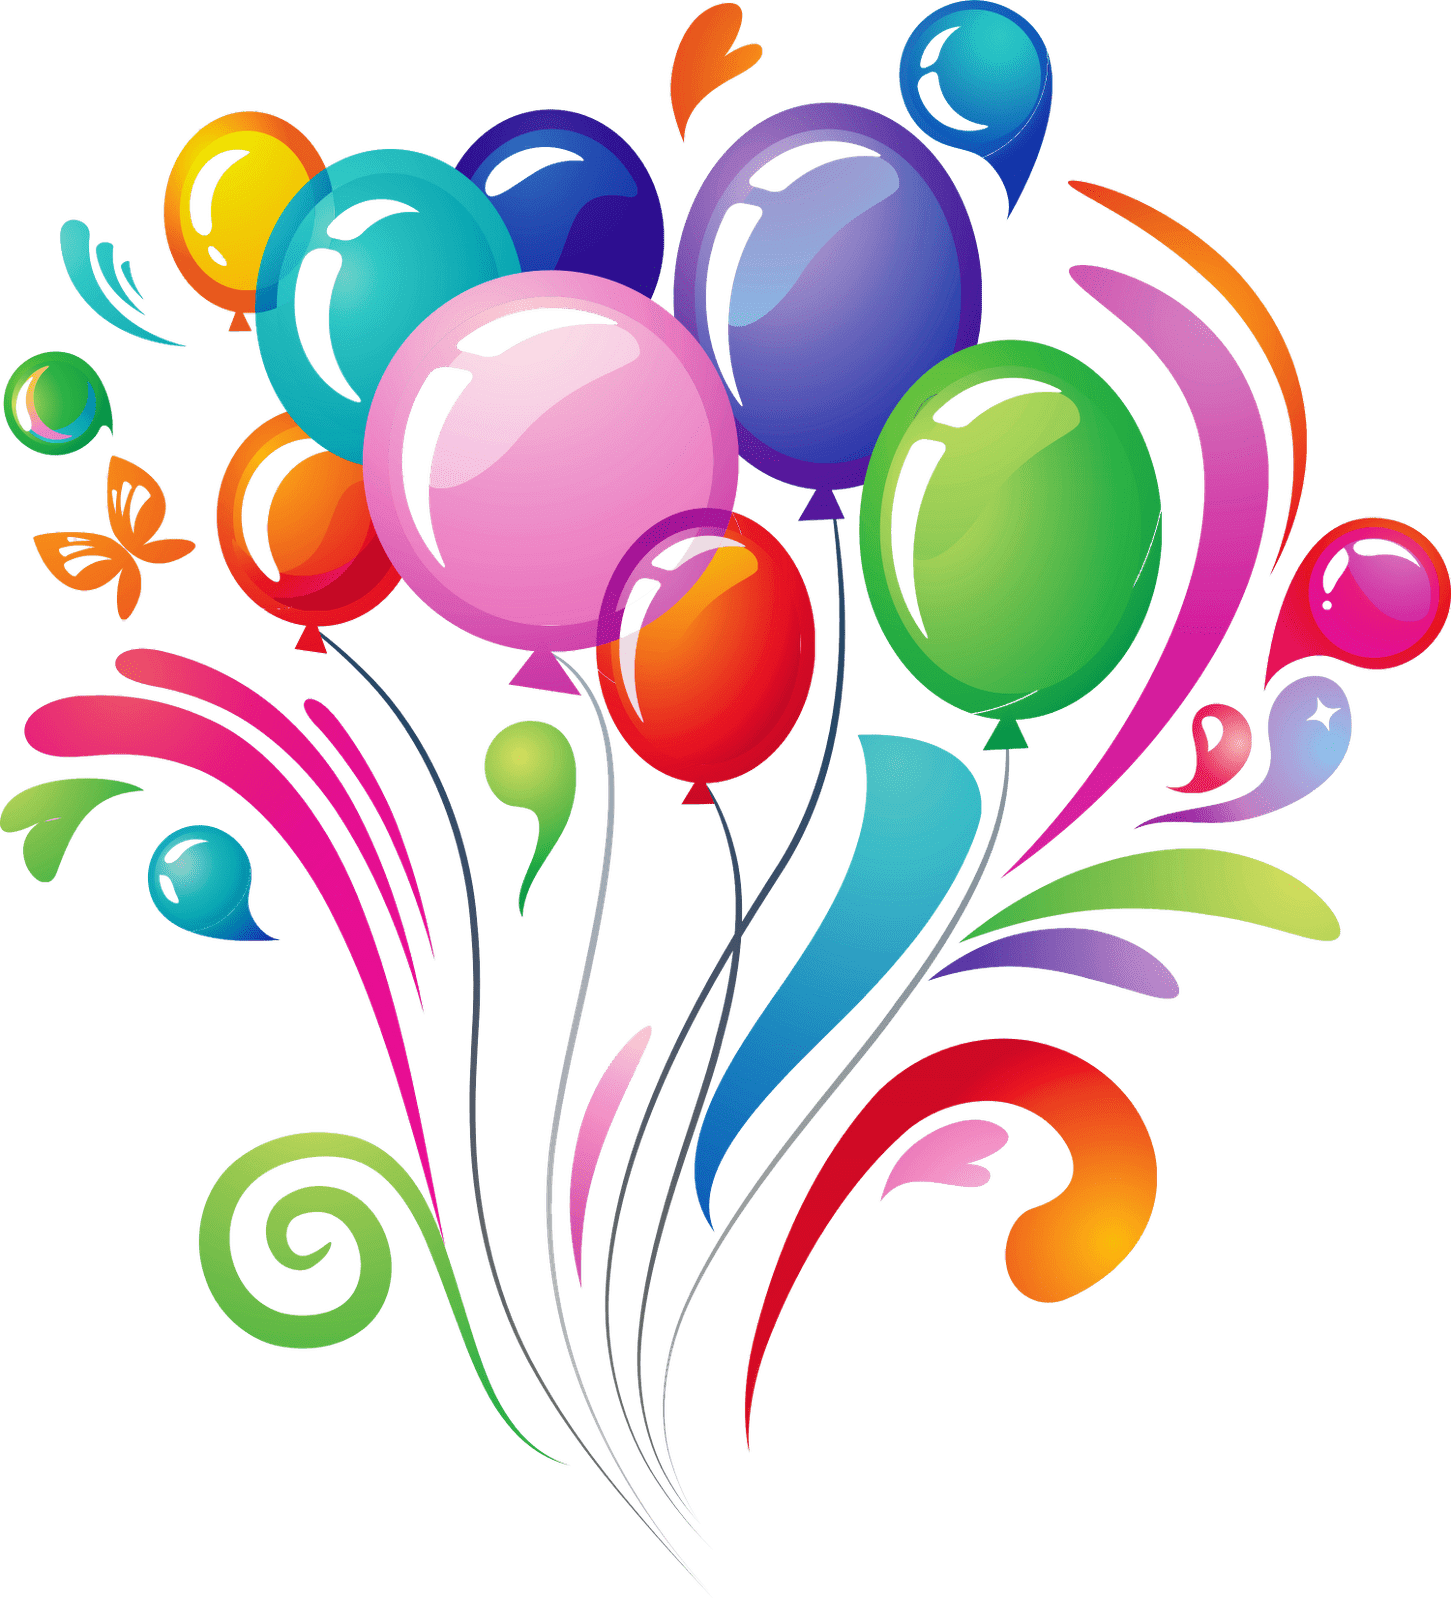 Explosions clipart balloon Balloons StickPNG Explosion transparent Balloons